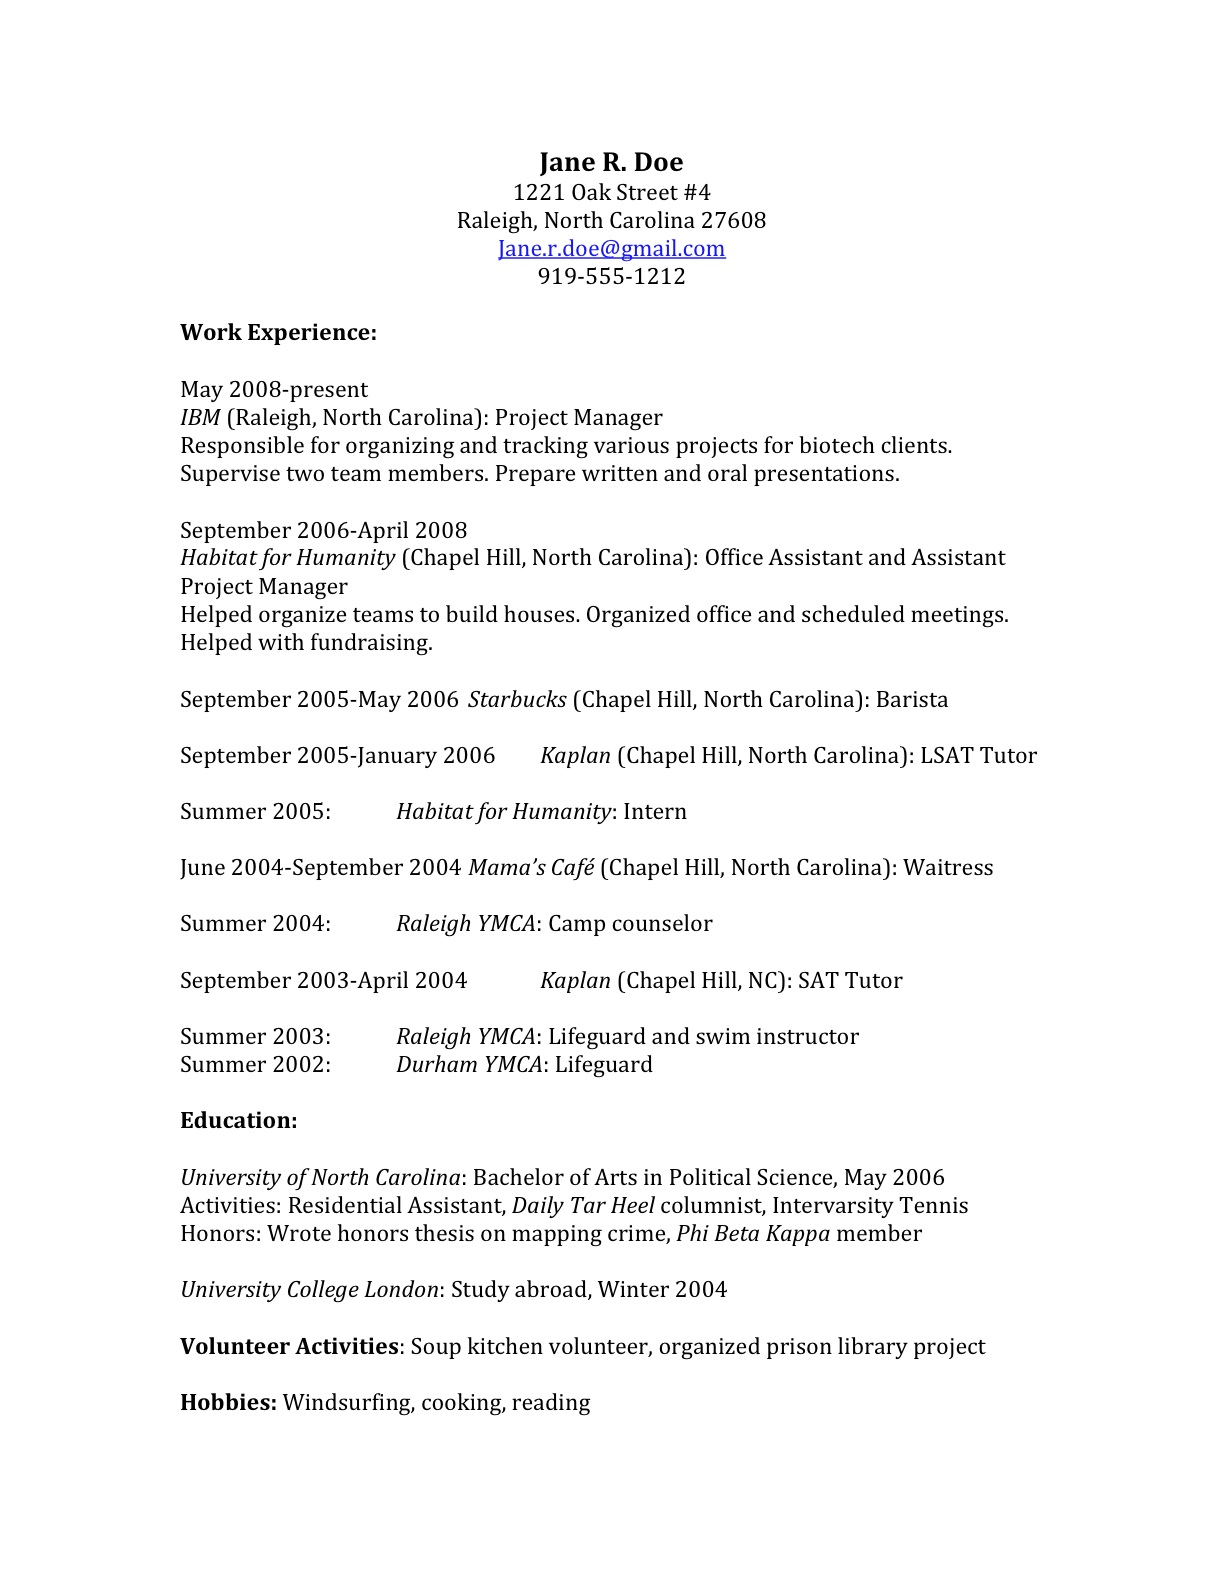 jane does starting resume - Sample Legal Resume